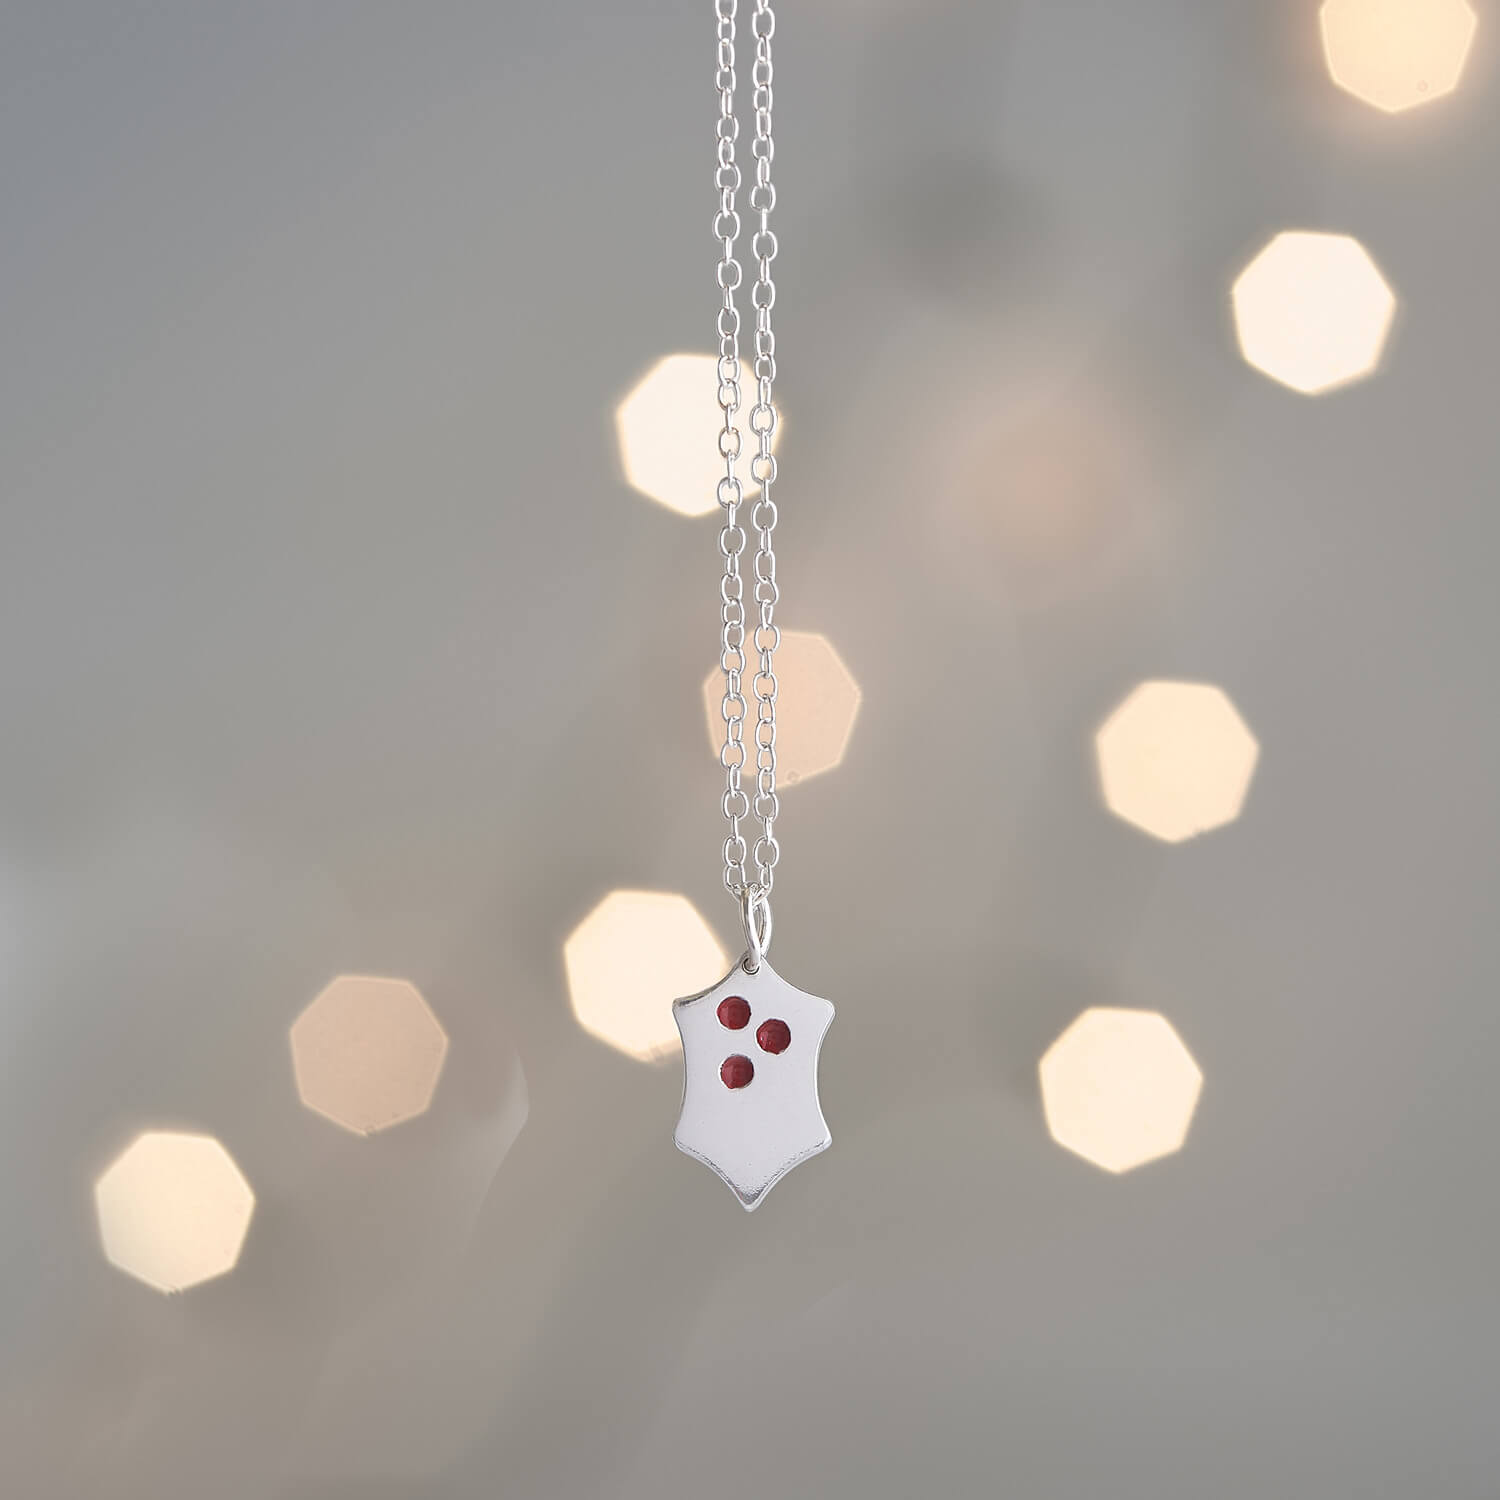 Silver pendant photography with bokeh lights in the background